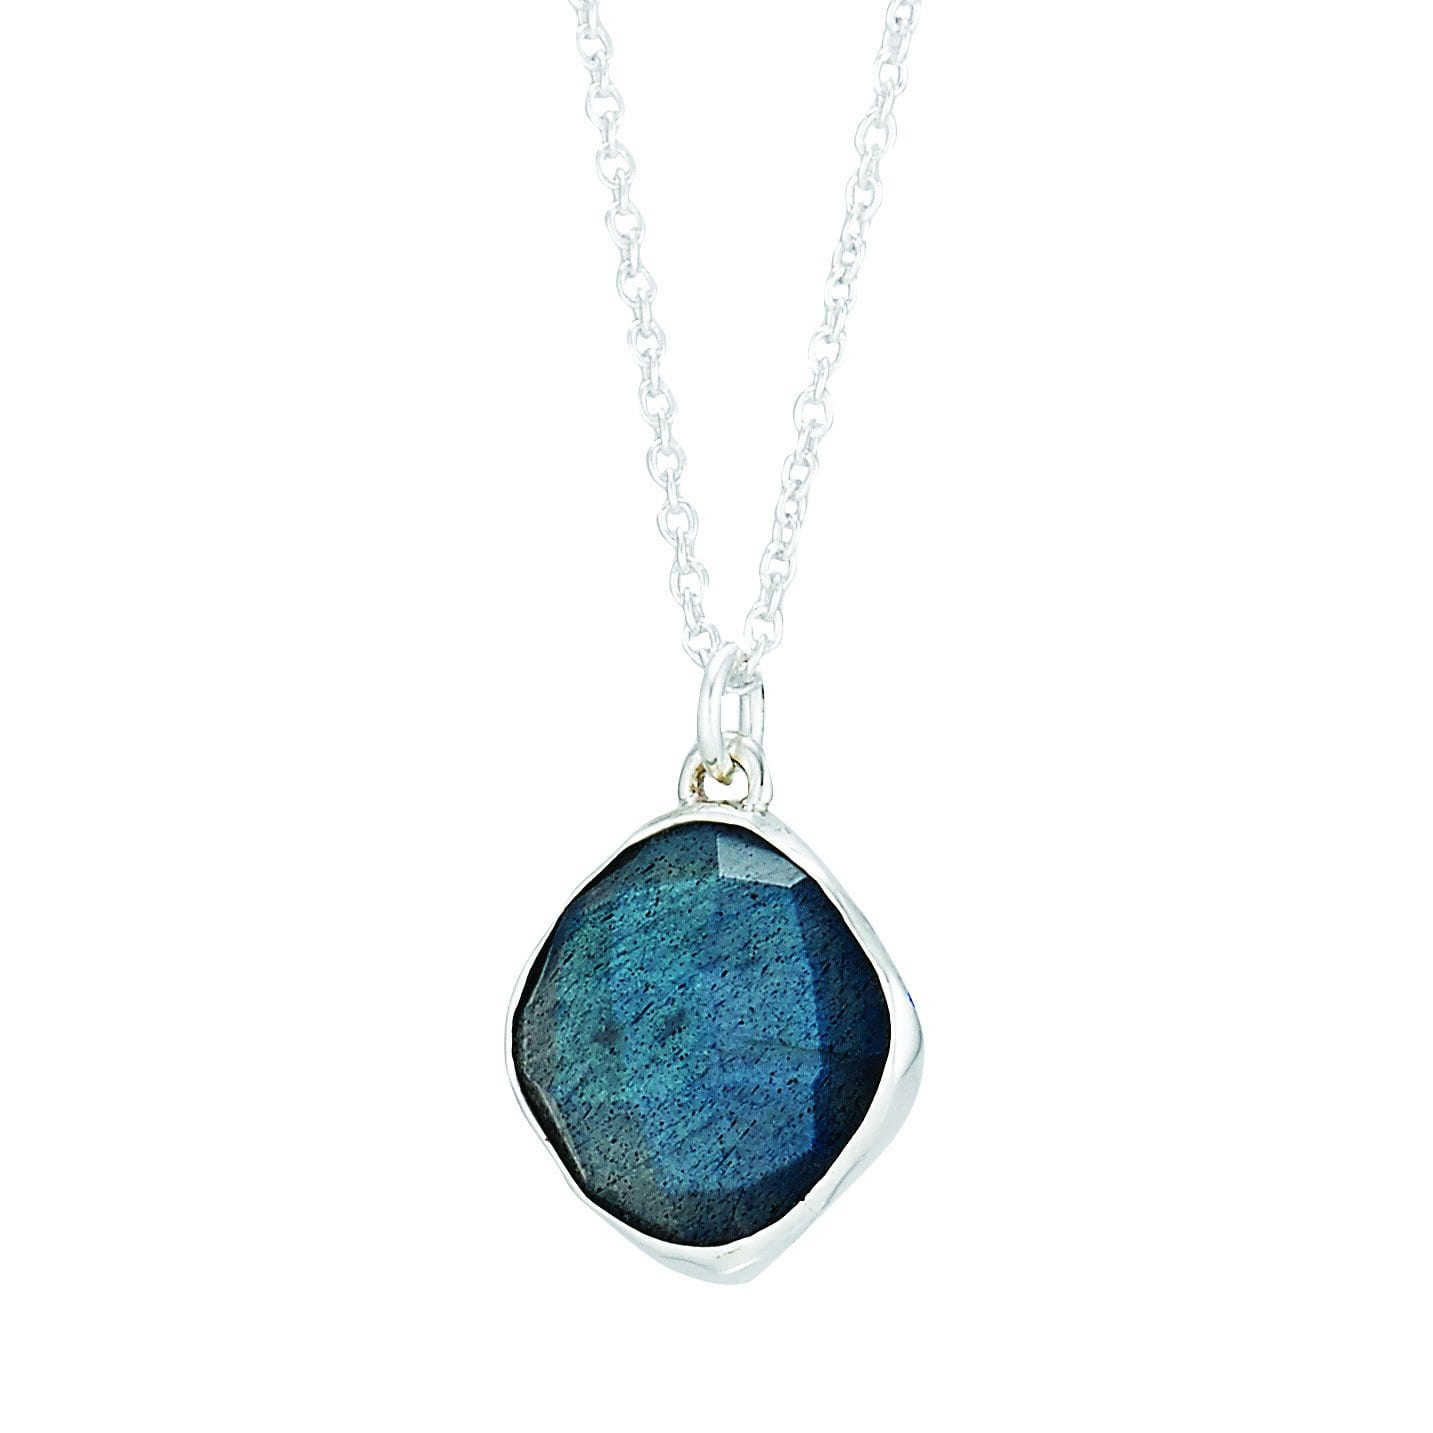 abundance genuine silver product products labradorite in beautiful gemstone pendant image